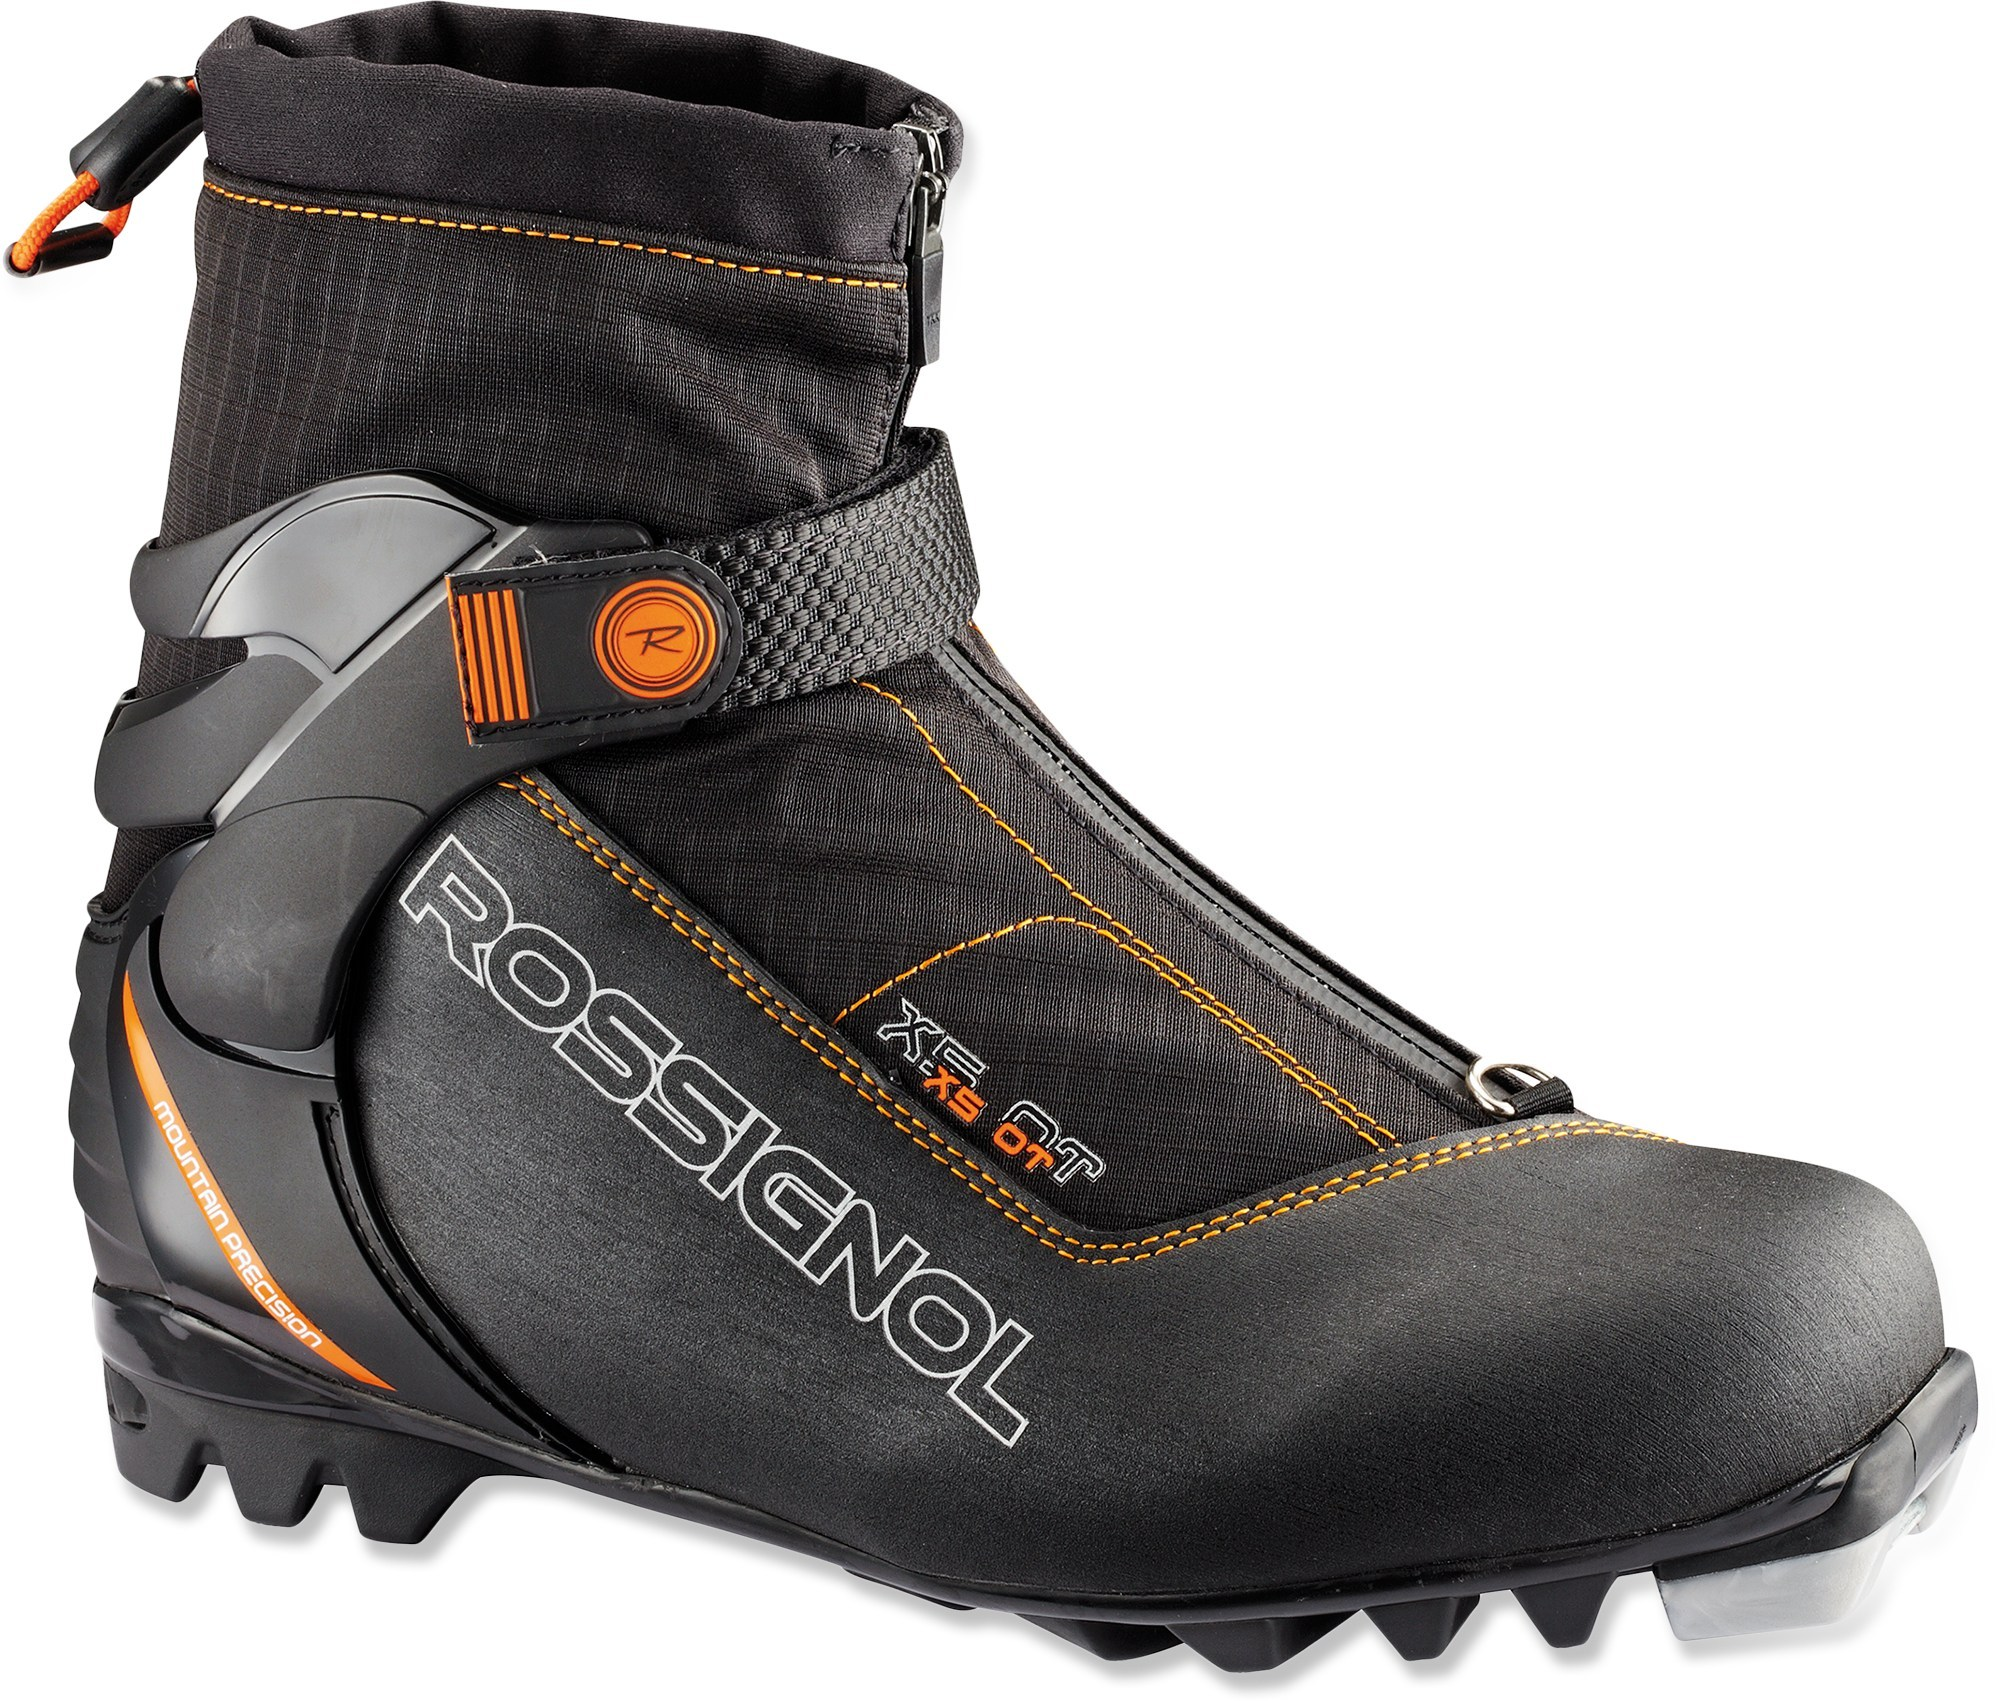 Rossignol X5 OT Cross-Country Ski Boots - Men's